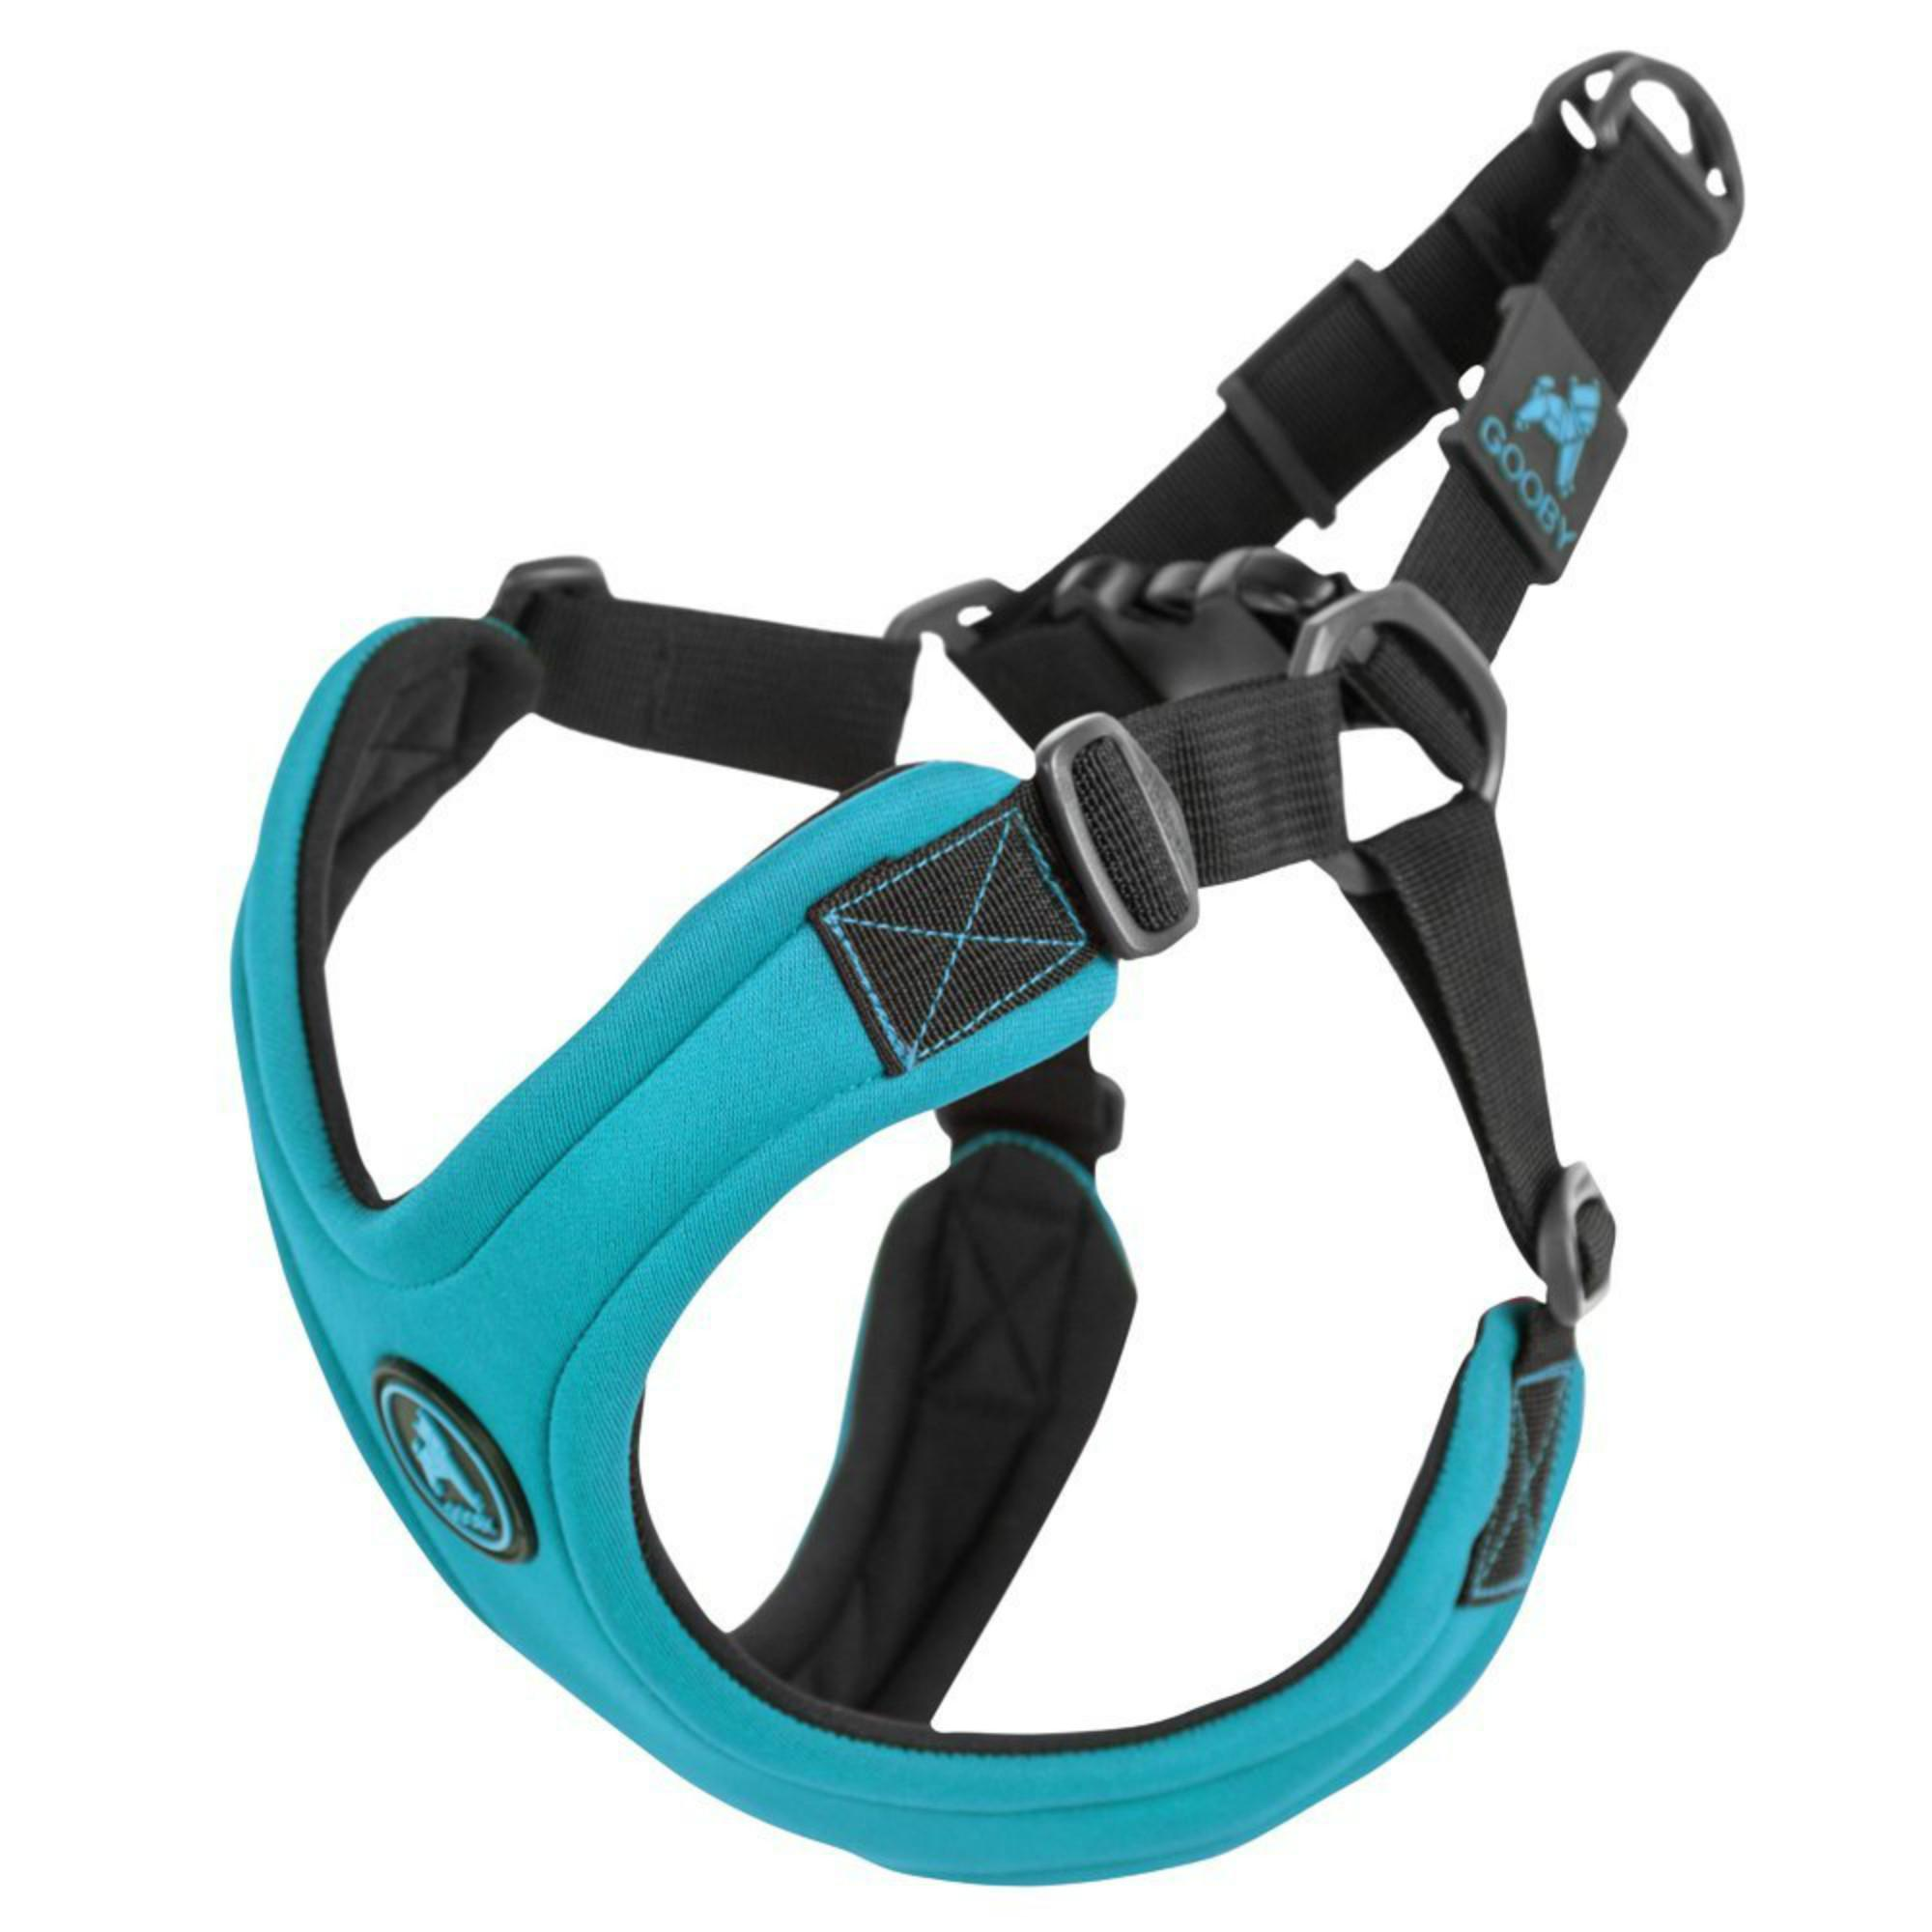 Gooby Escape Free Sport Dog Harness - Turquoise